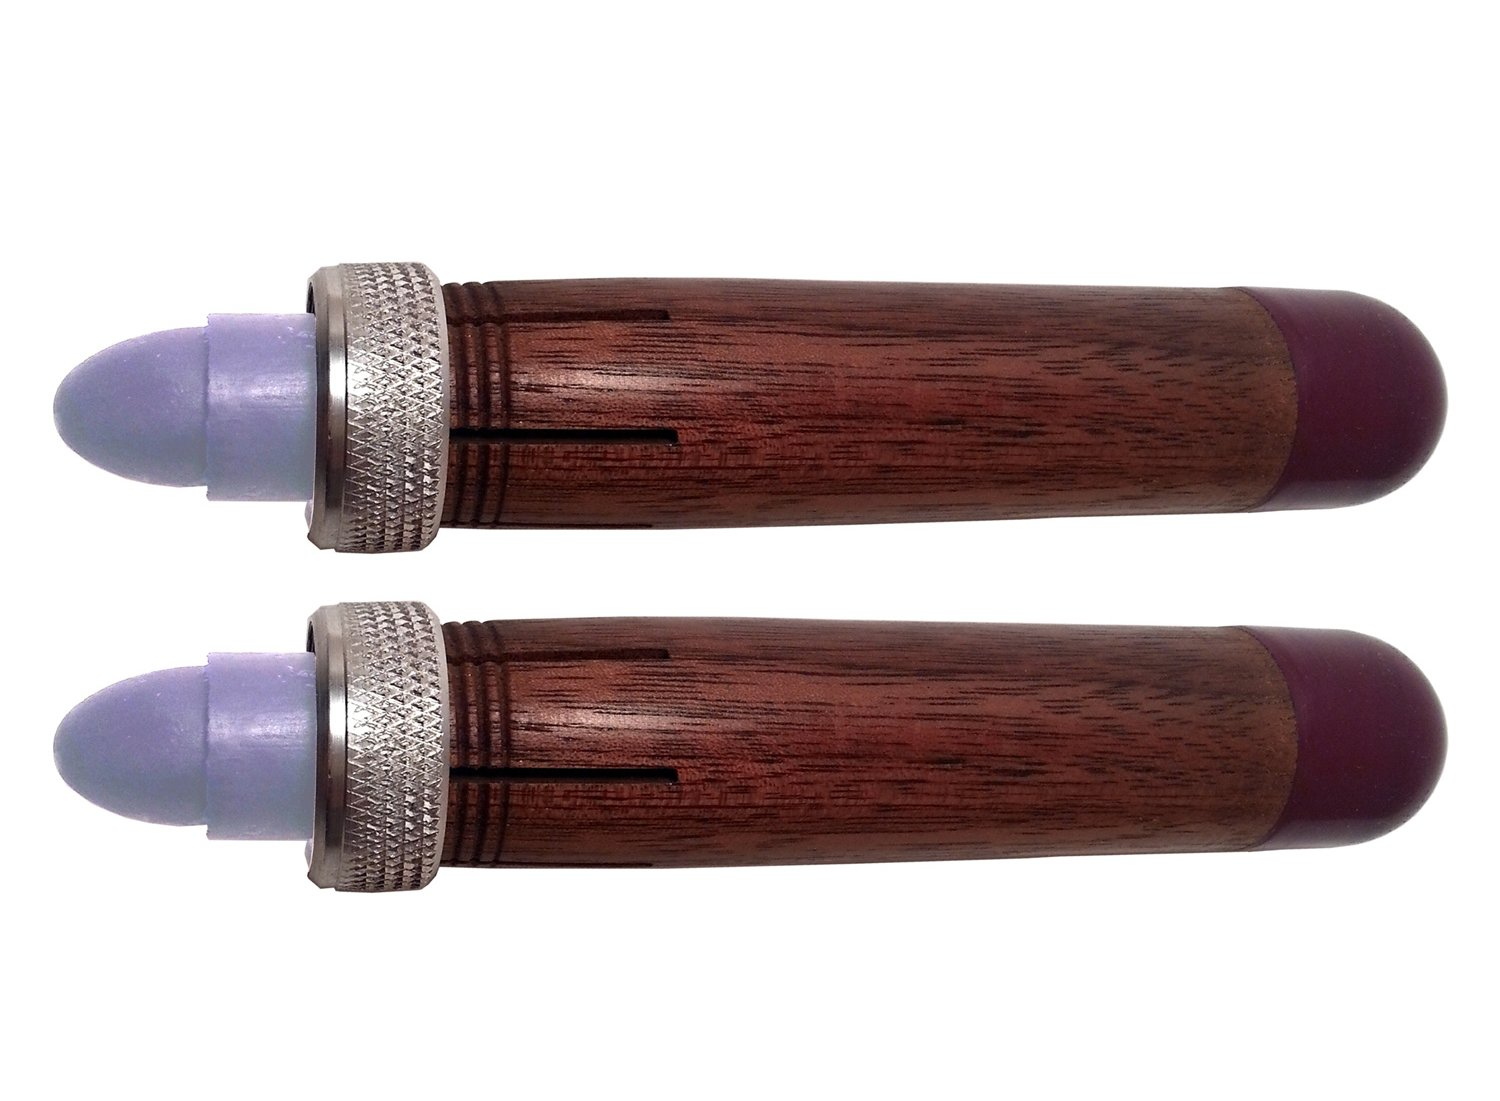 Dixon Fluorescan Wood Handle 11/16'' Lumber Crayon Holders (2 Pack)